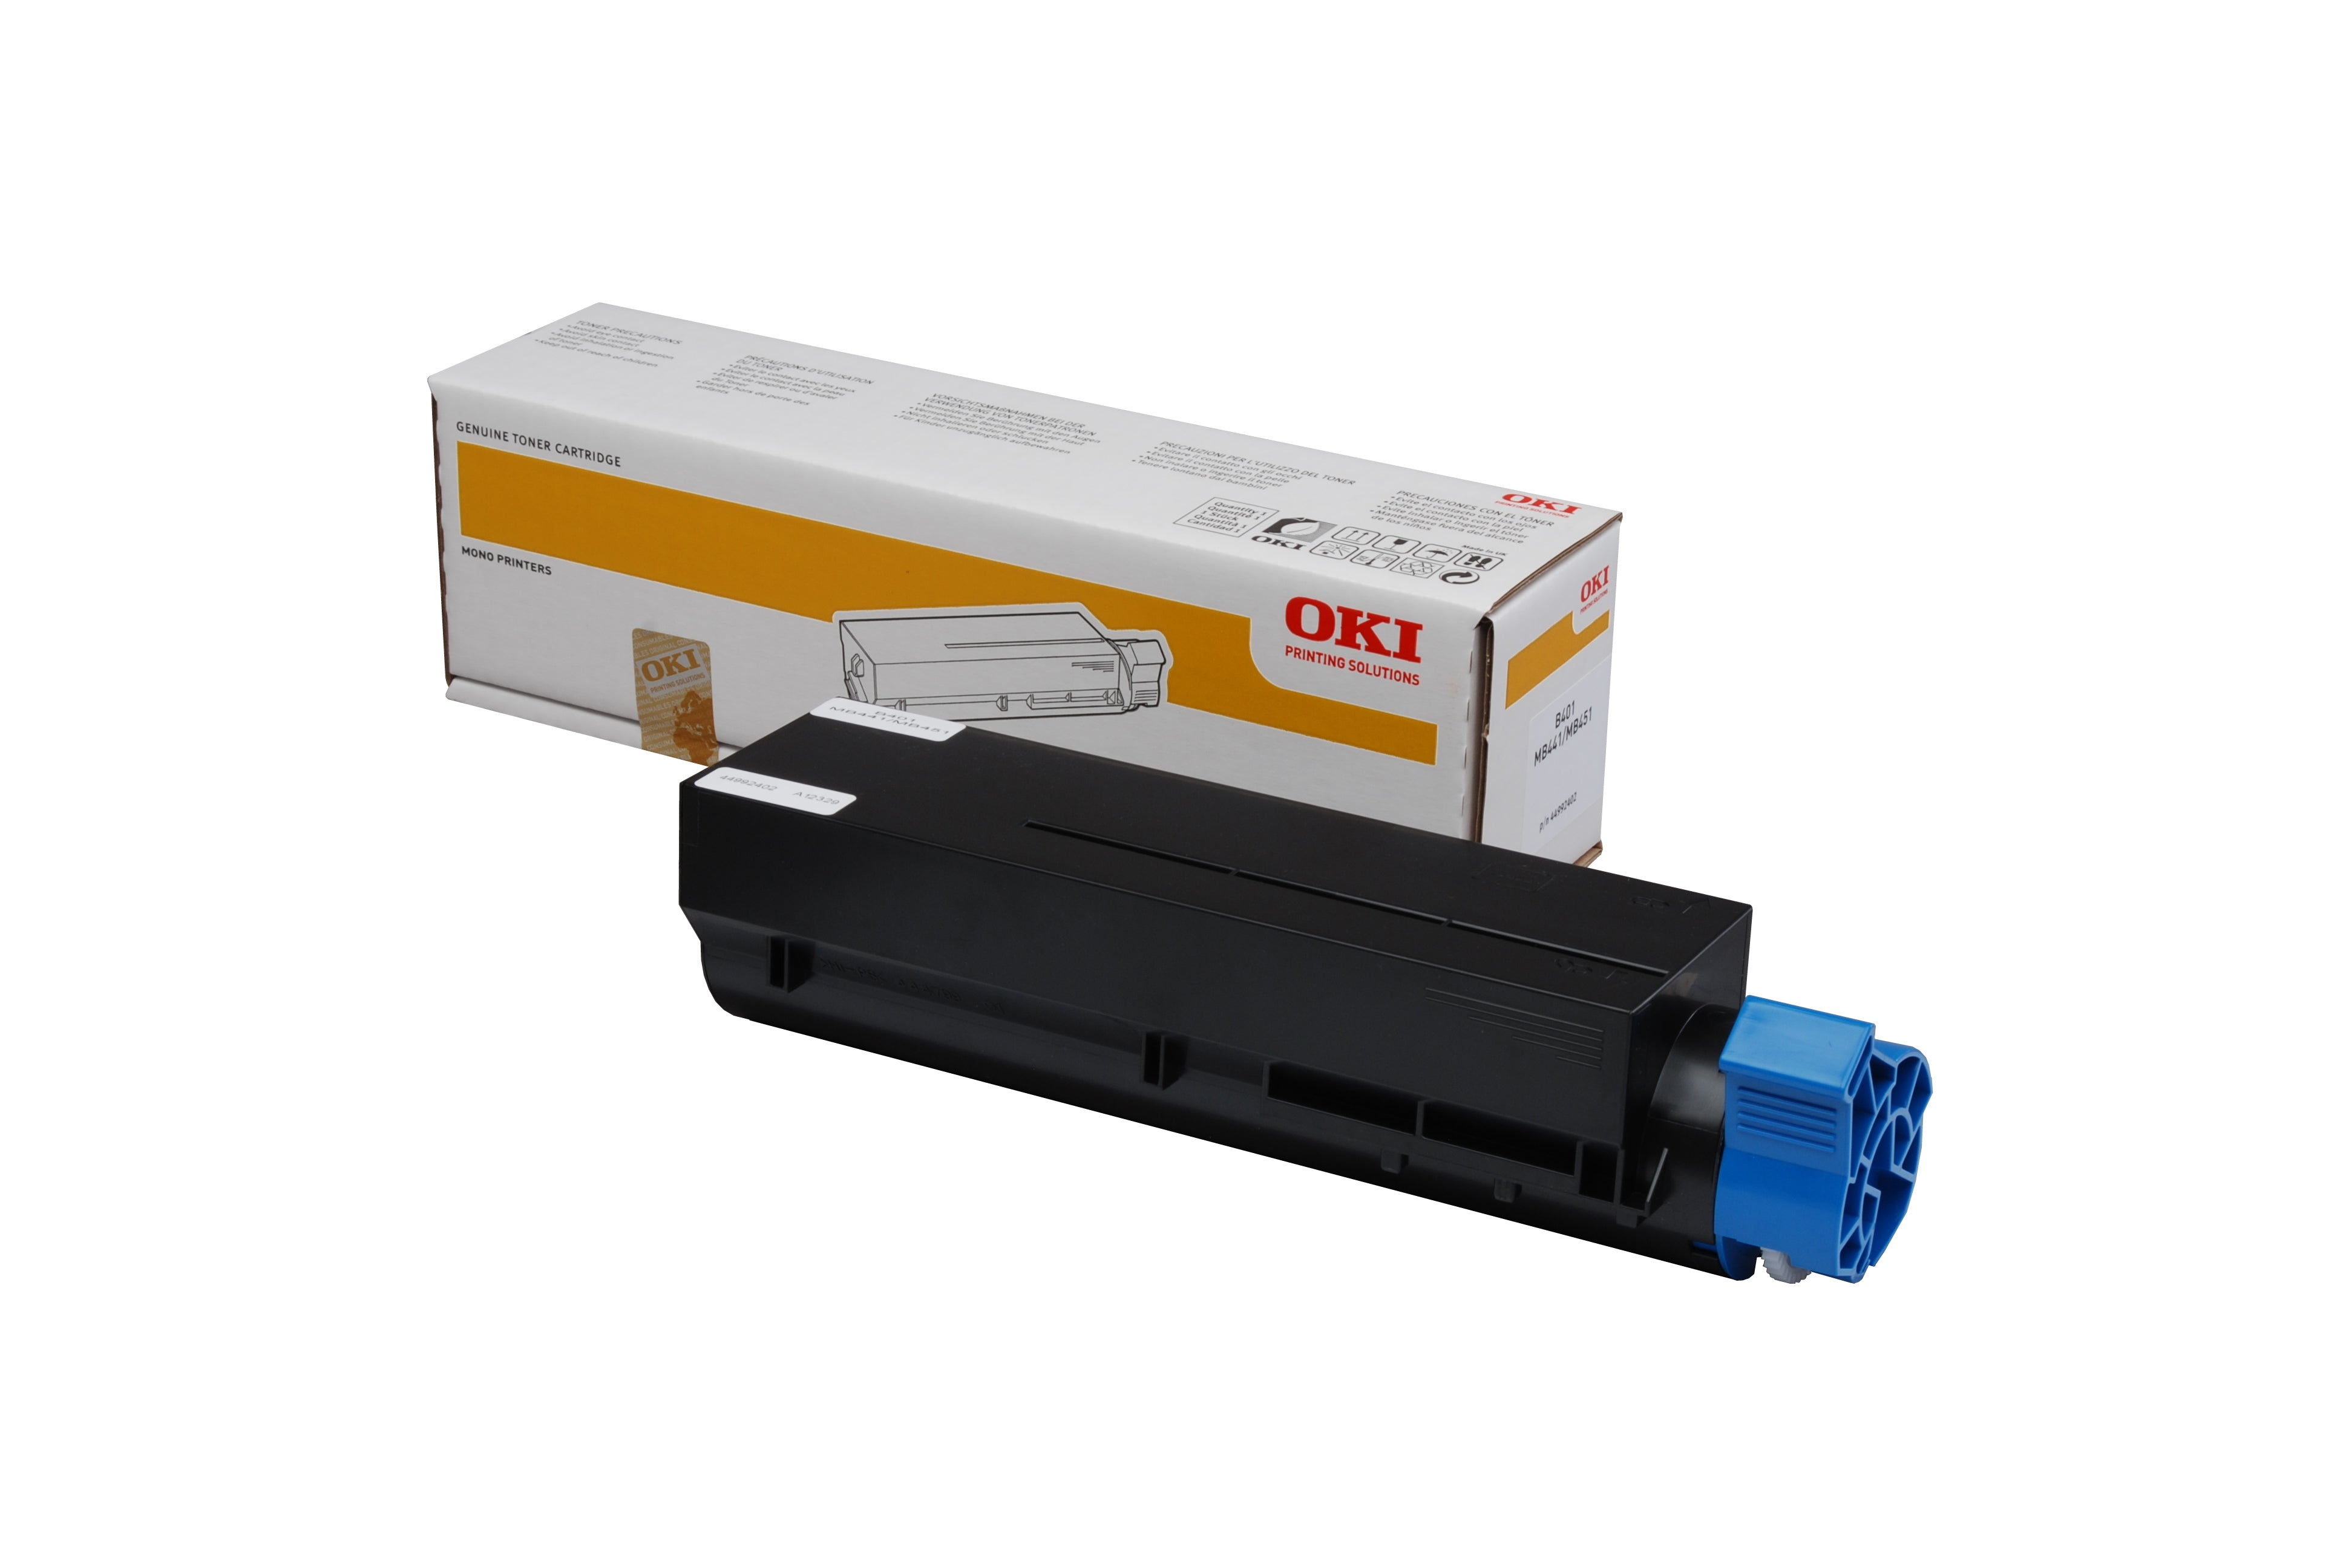 OKI MB451dnw Black Toner (2,500 Pages) 44992407